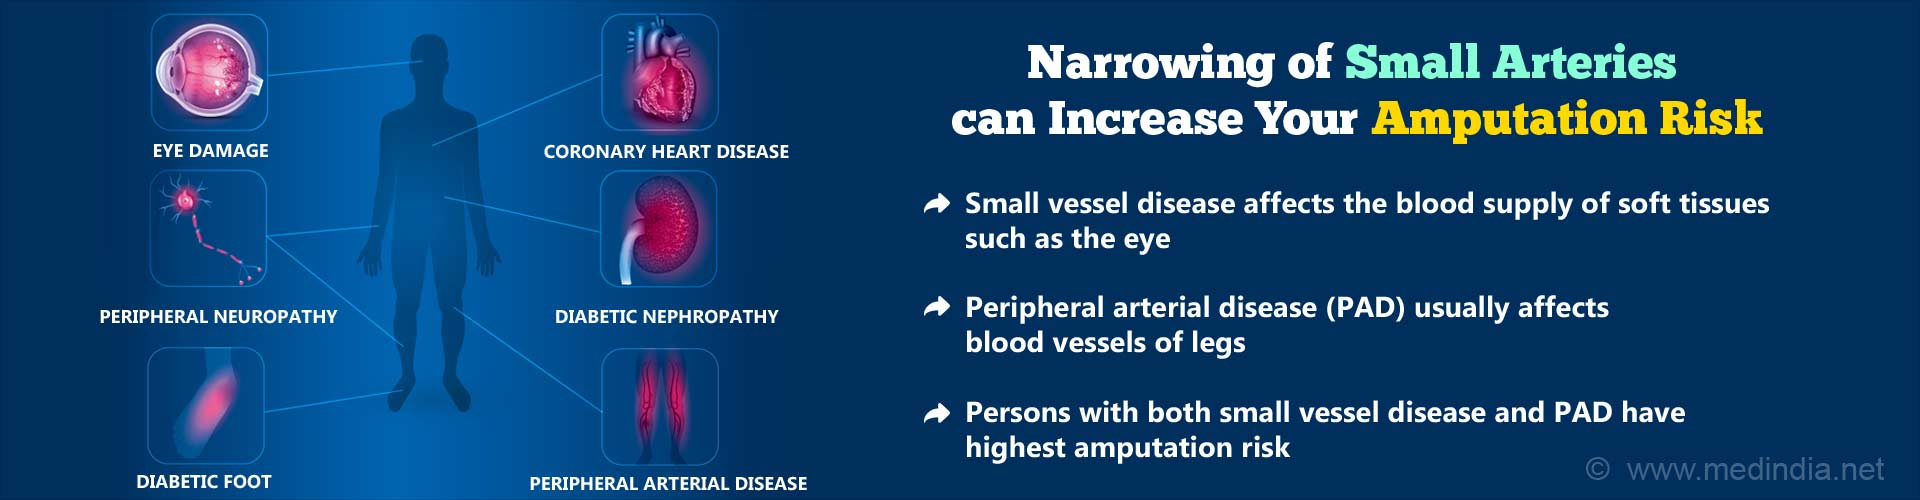 Narrowing of small arteries can increase your amputation risk. Small vessel disease affects the blood supply of soft tissues such as the eye. Peripheral arterial disease (PAD) usually affects blood vessels of legs. Persons with both small vessel disease and PAD have highest amputation risk.